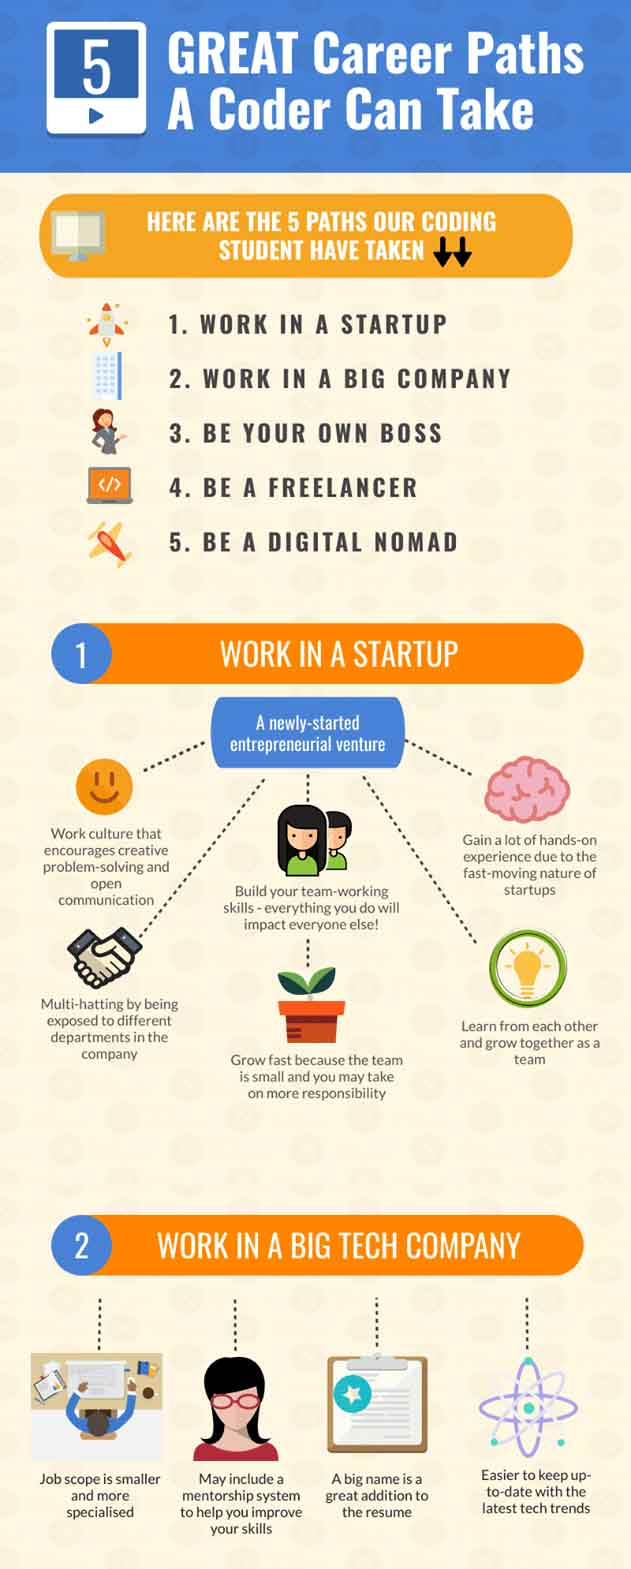 Infographic of career paths that coders can take part 1